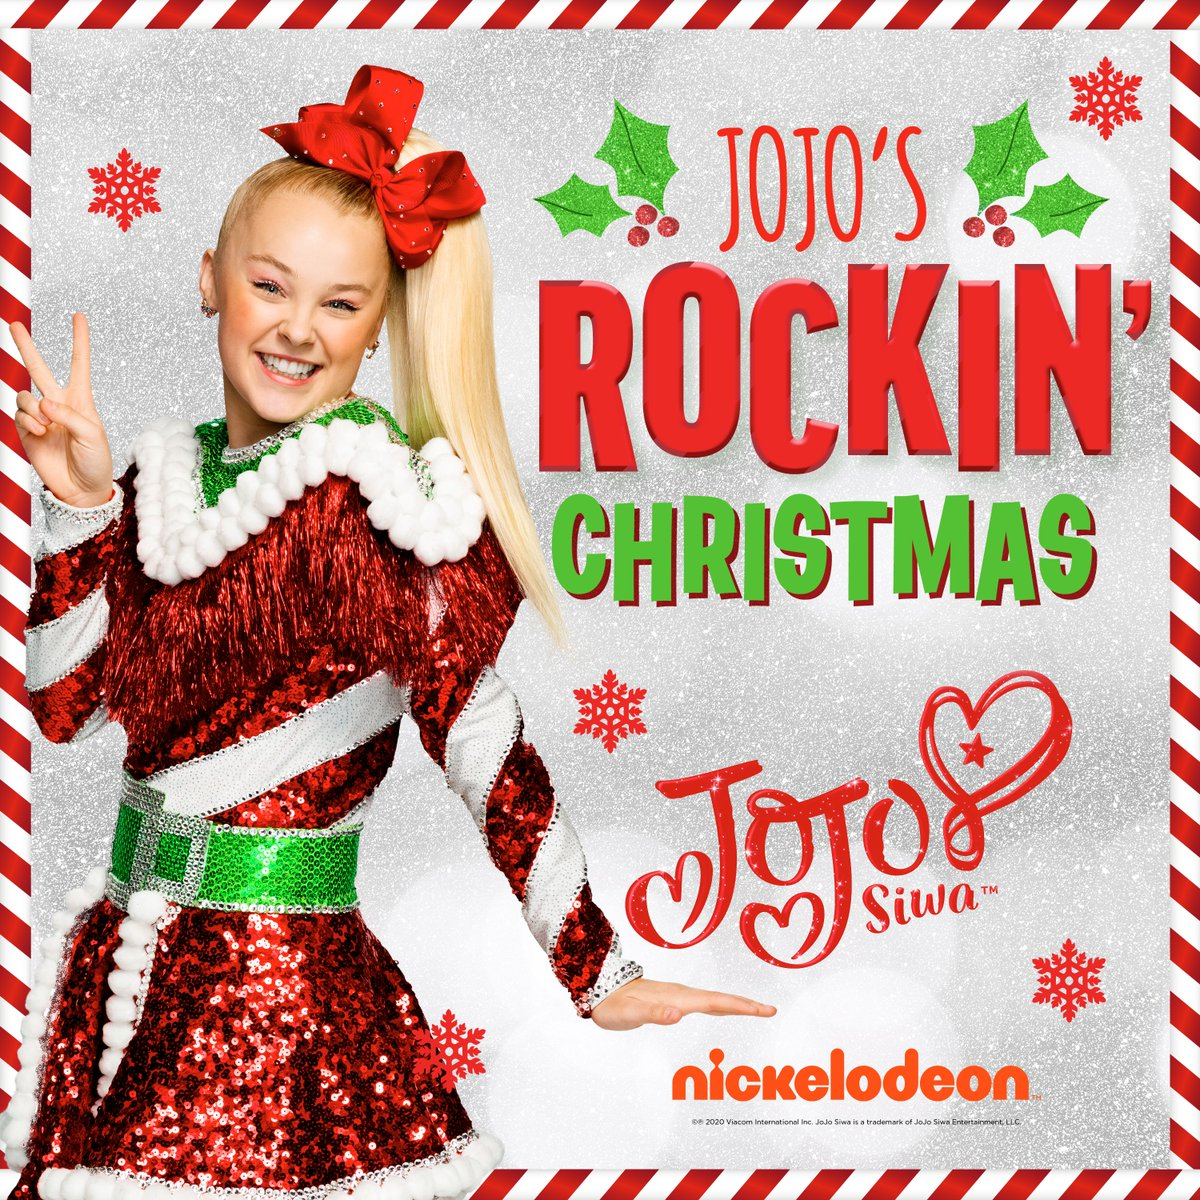 .@itsjojosiwa has a brand new Christmas EP out today! Available to stream here: